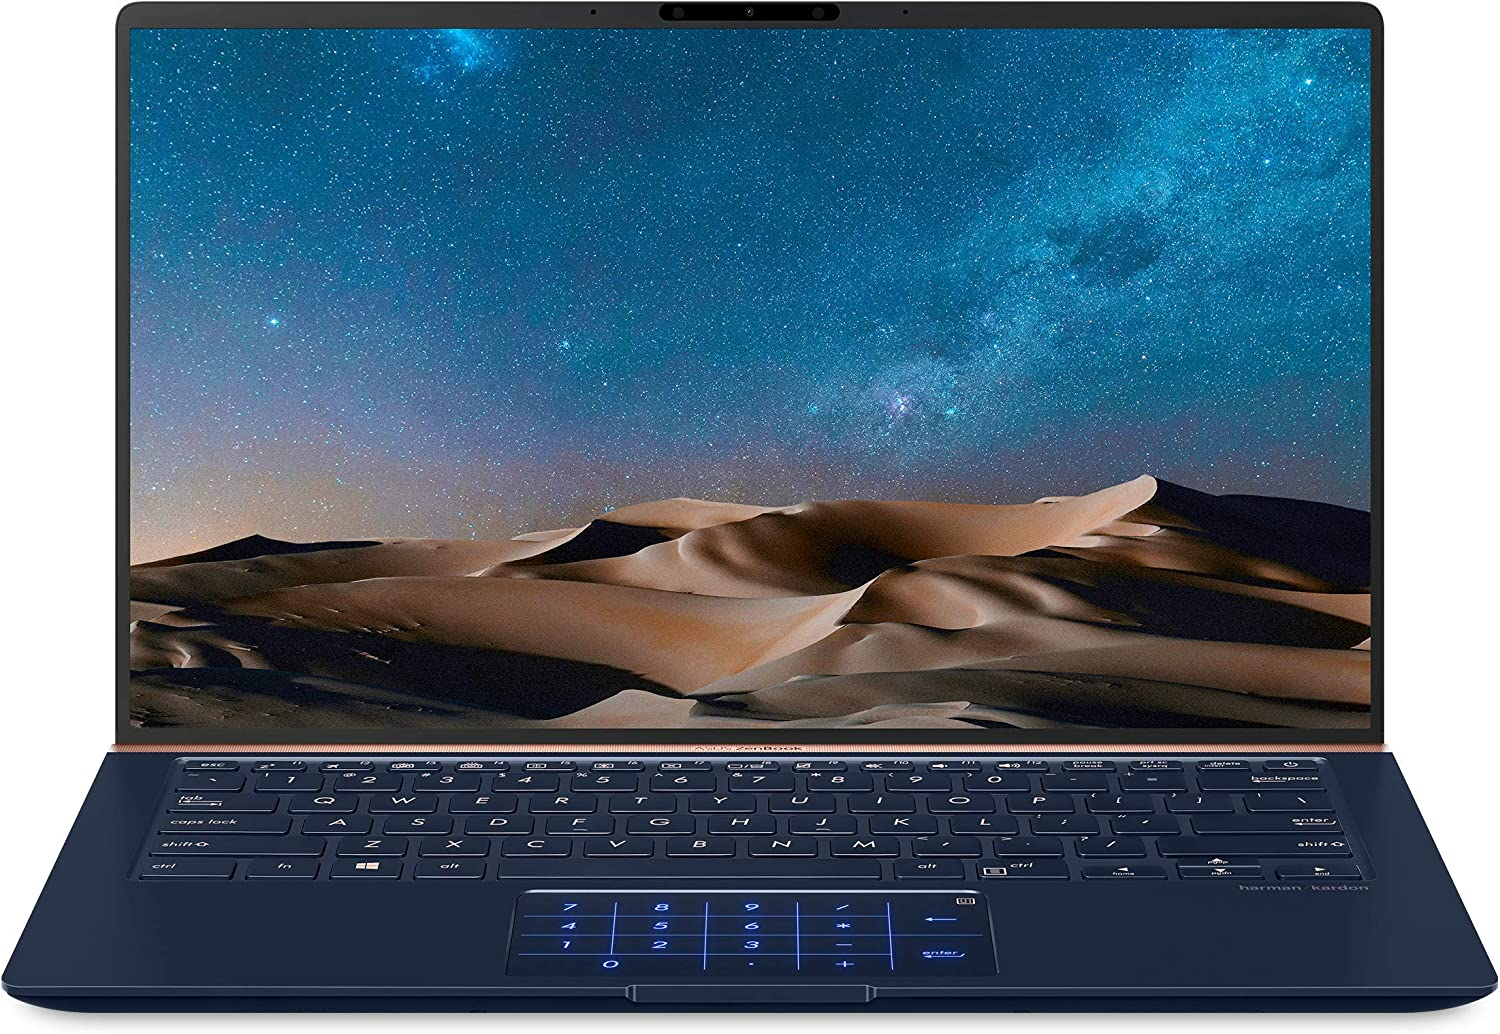 "ASUS ZenBook 14 Ultra-Slim Laptop 14"" FHD Nano-Edge Bezel, 8th-Gen Intel Core i7-8565U Processor, 16GB LPDDR3, 512GB PCIe SSD, Backlit KB, Numberpad, Windows 10 - UX433FA-DH74, Royal Blue (Renewed)"